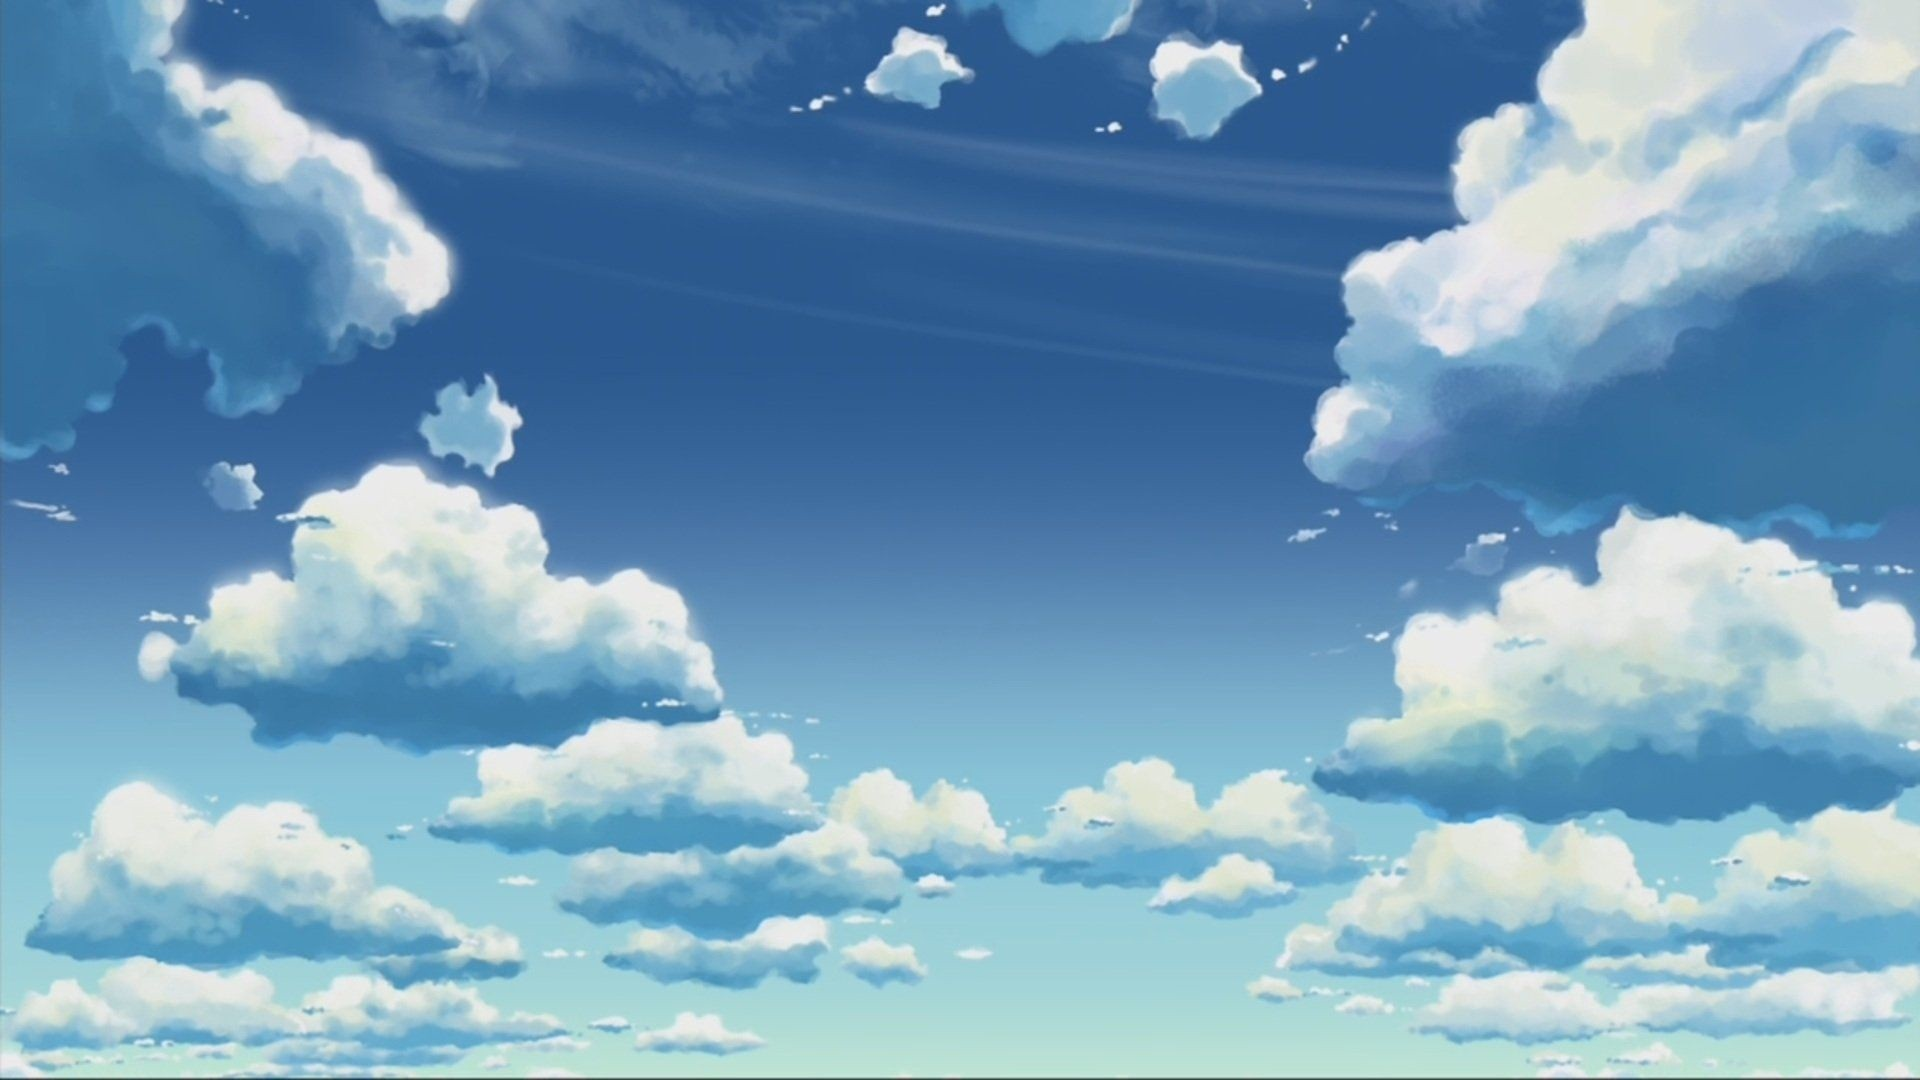 Anime Clouds Wallpaper and Background